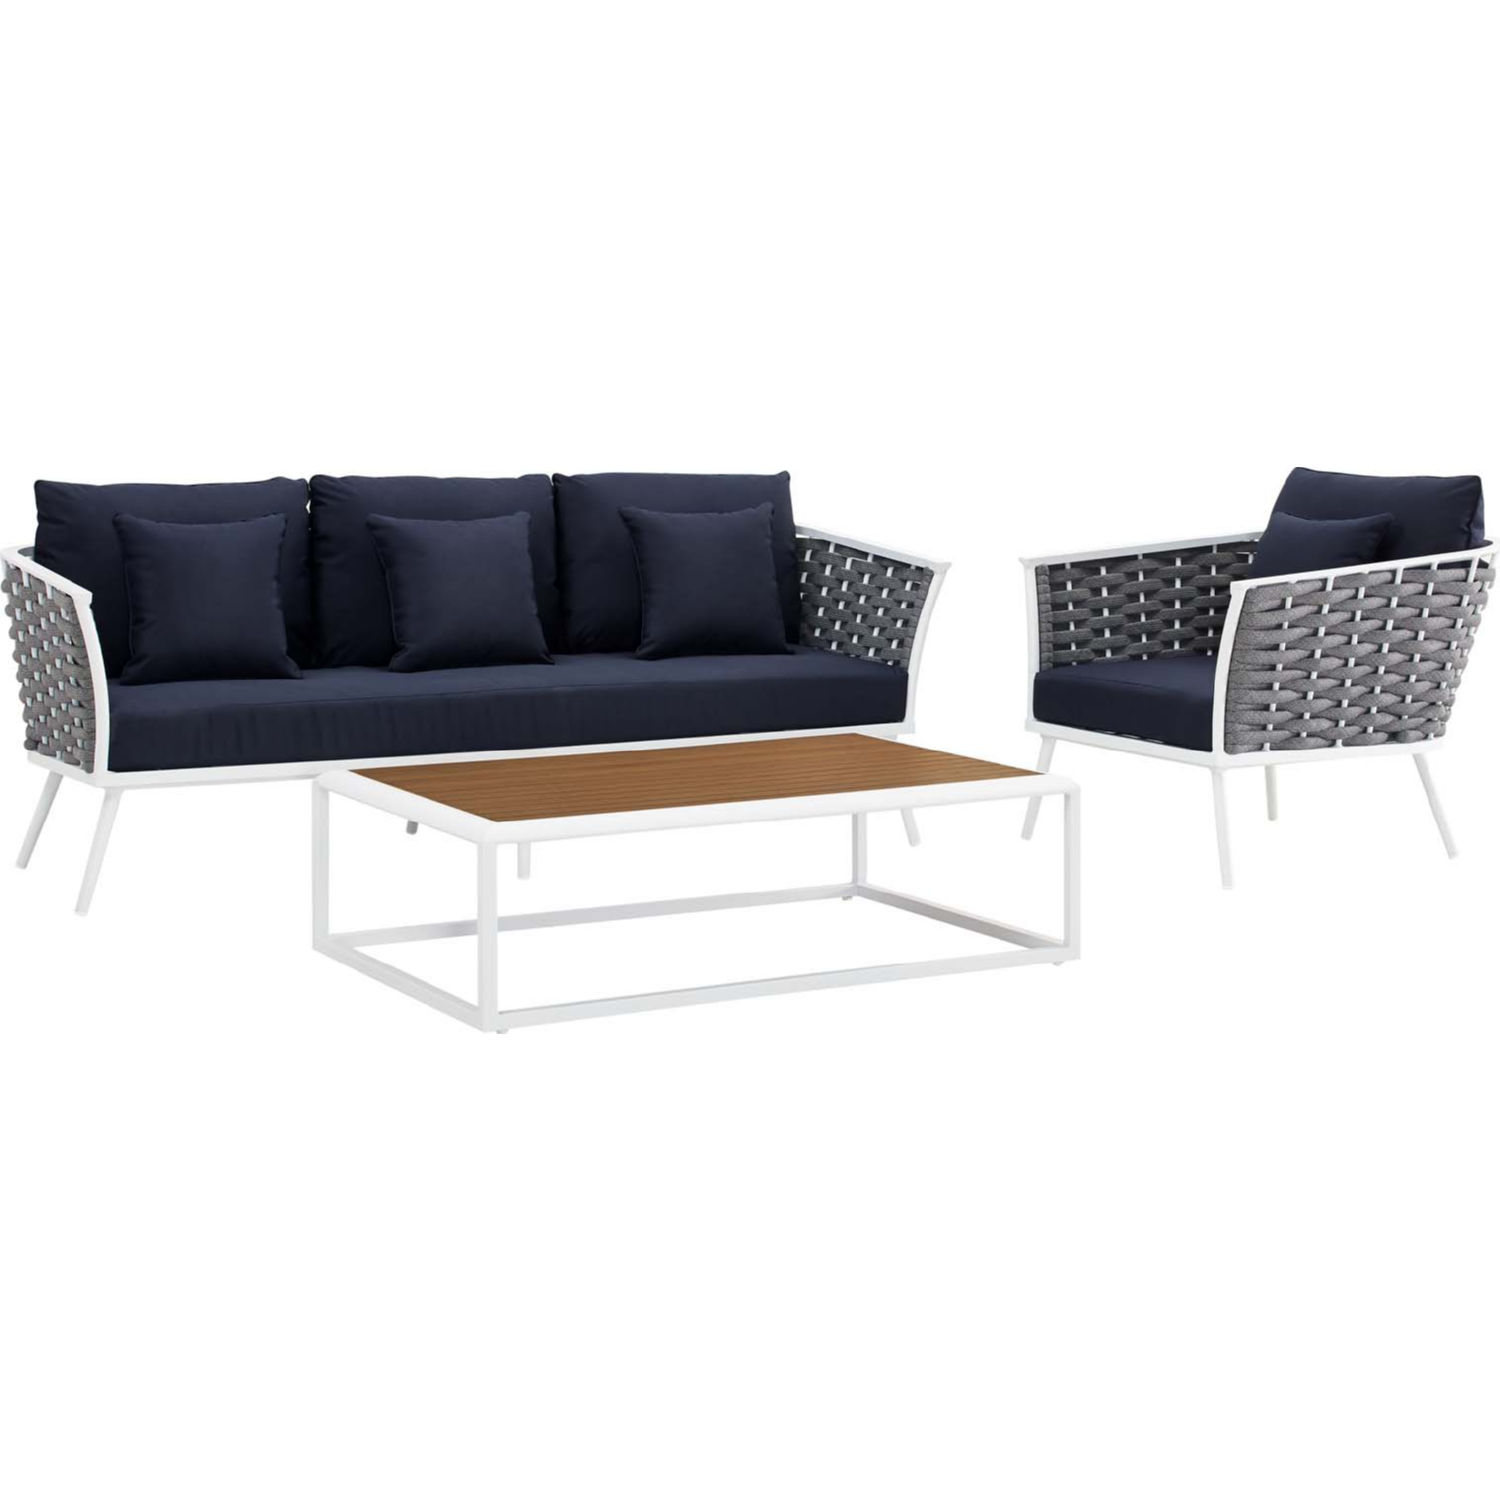 Stance 3 Piece Outdoor Sofa Set in White w/ Navy Blue Fabric by Modway